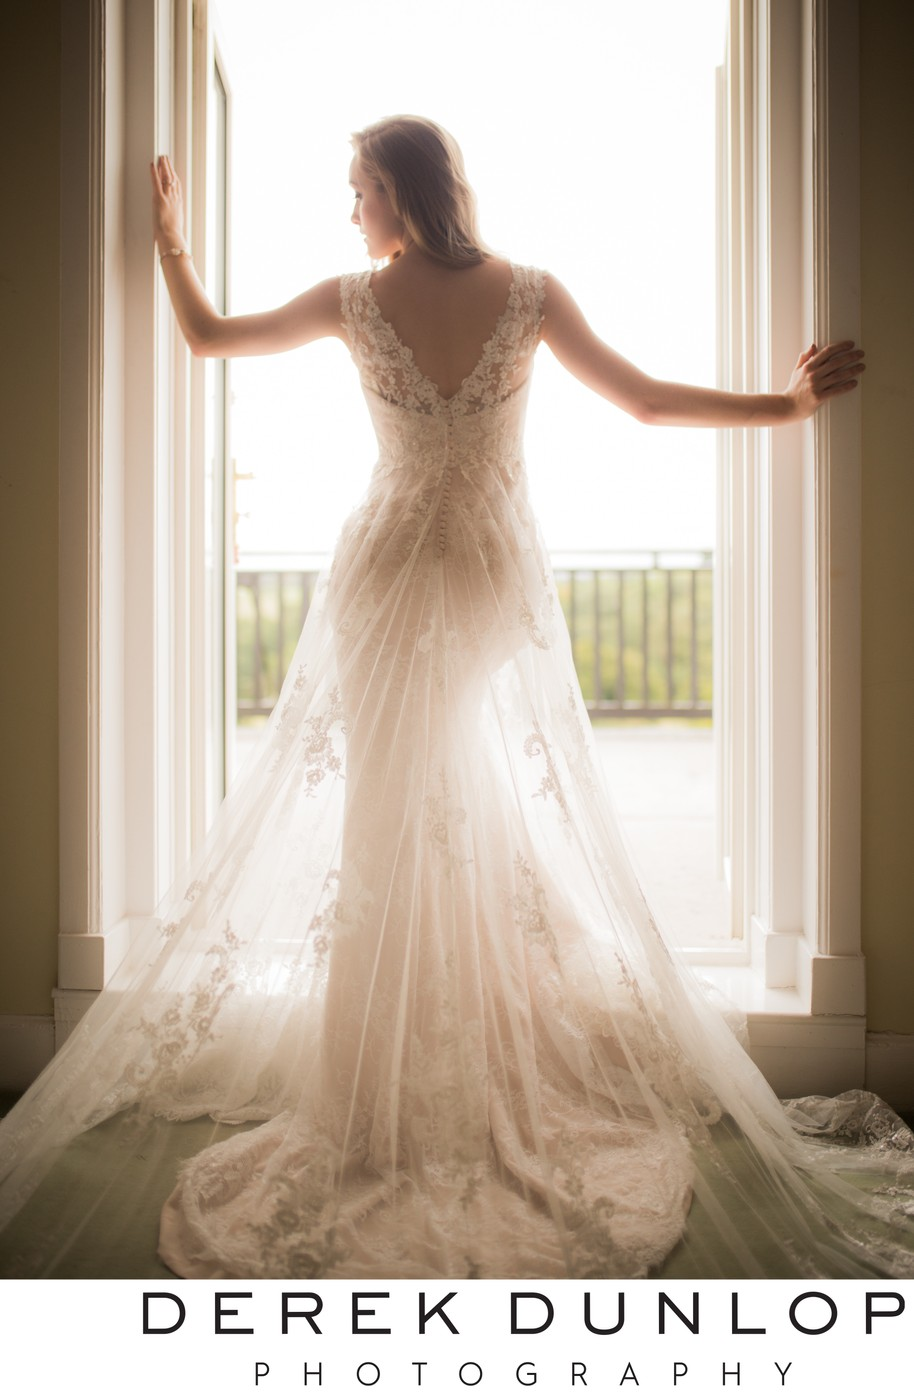 Elegant bridal Dress at Enterkine House Hotel